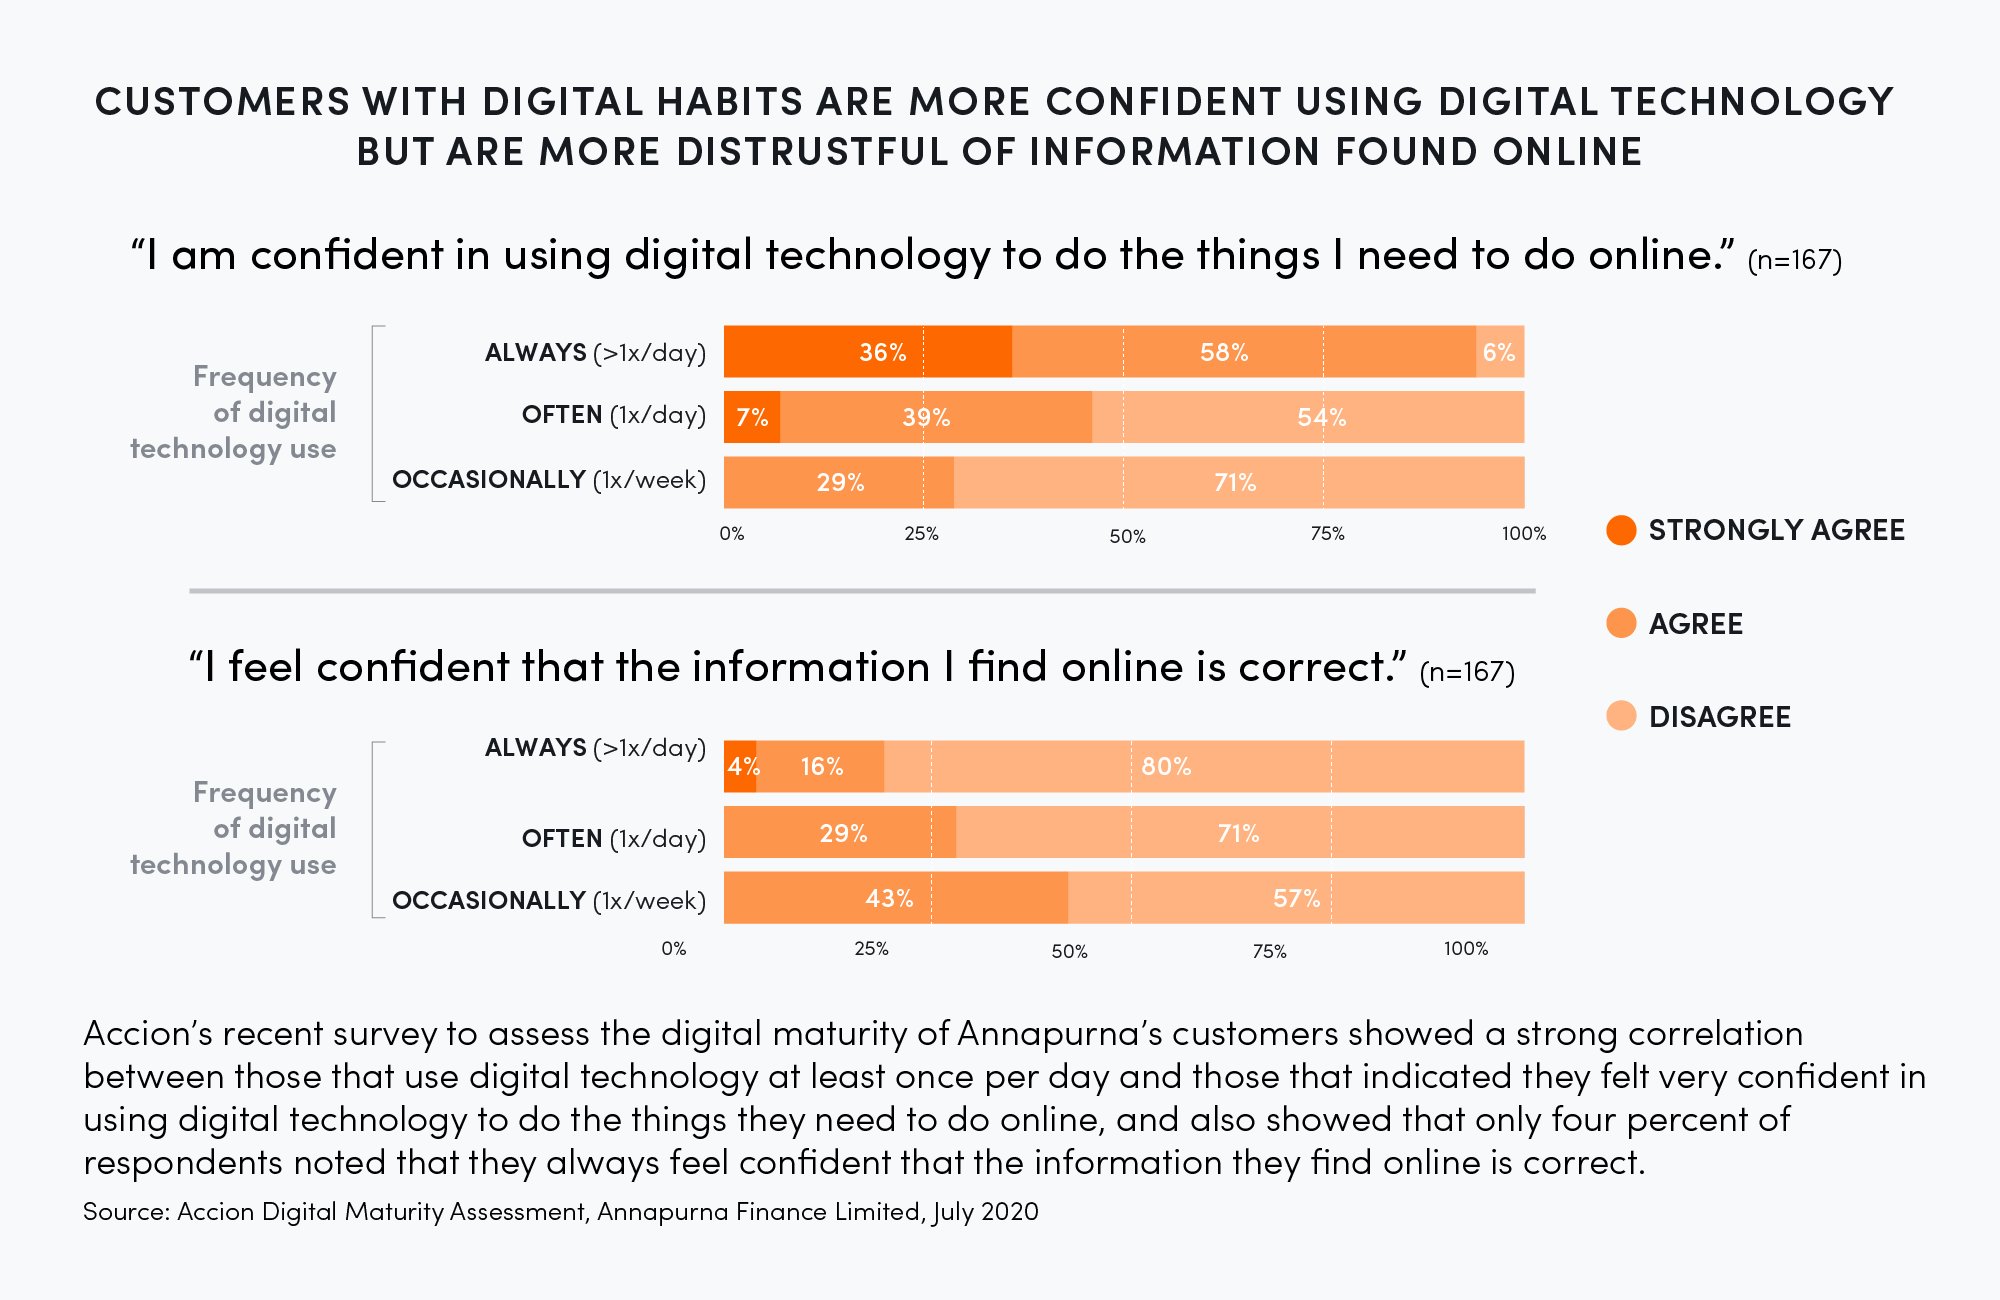 Customers with digital habits are more confident using digital technology but are more distrustful of information found online